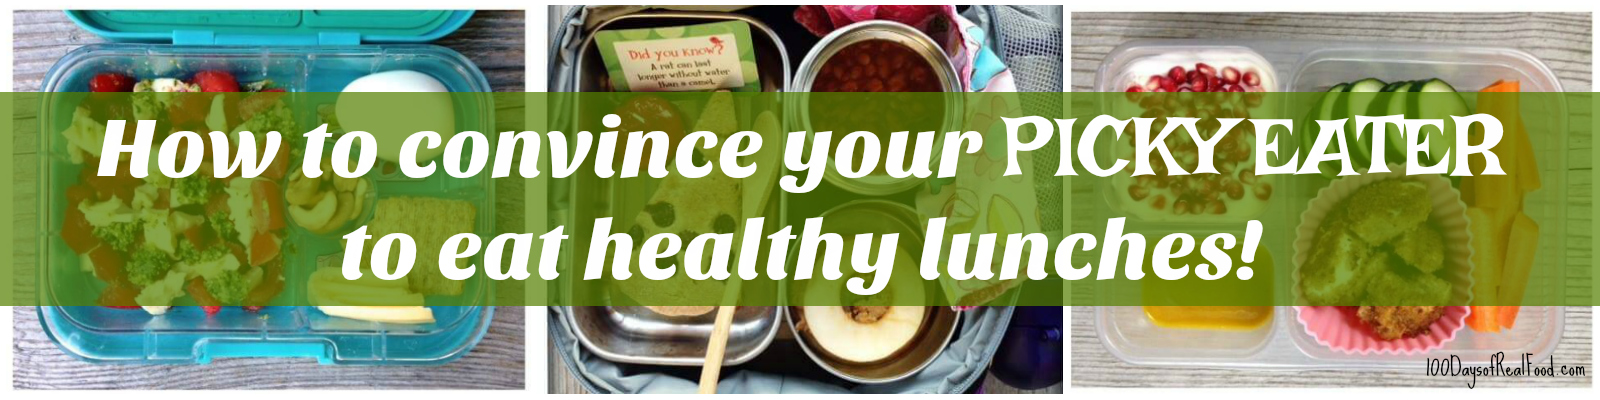 How to convince your picky eater to eat healthy lunches on 100 Days of Real Food